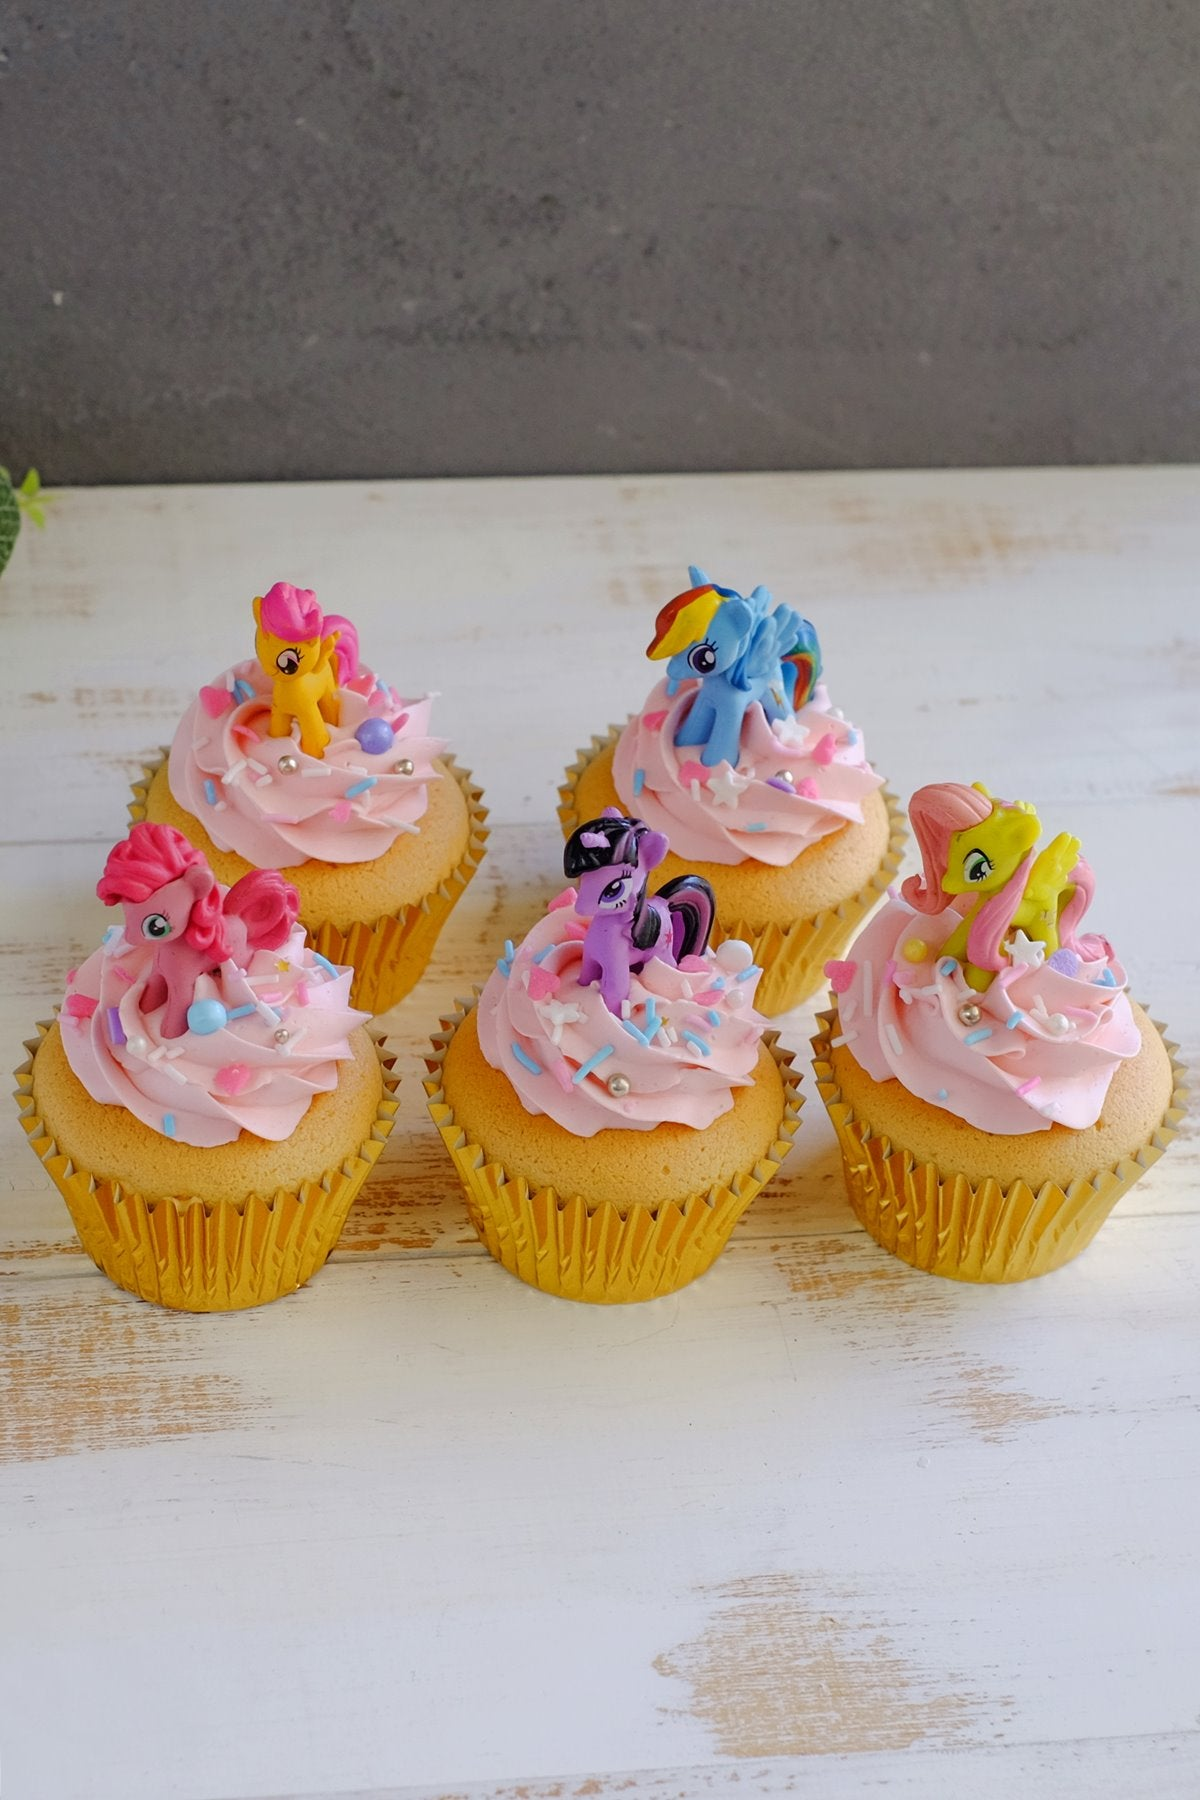 My Little Pony Cupcakes (From $5.50/Pc)